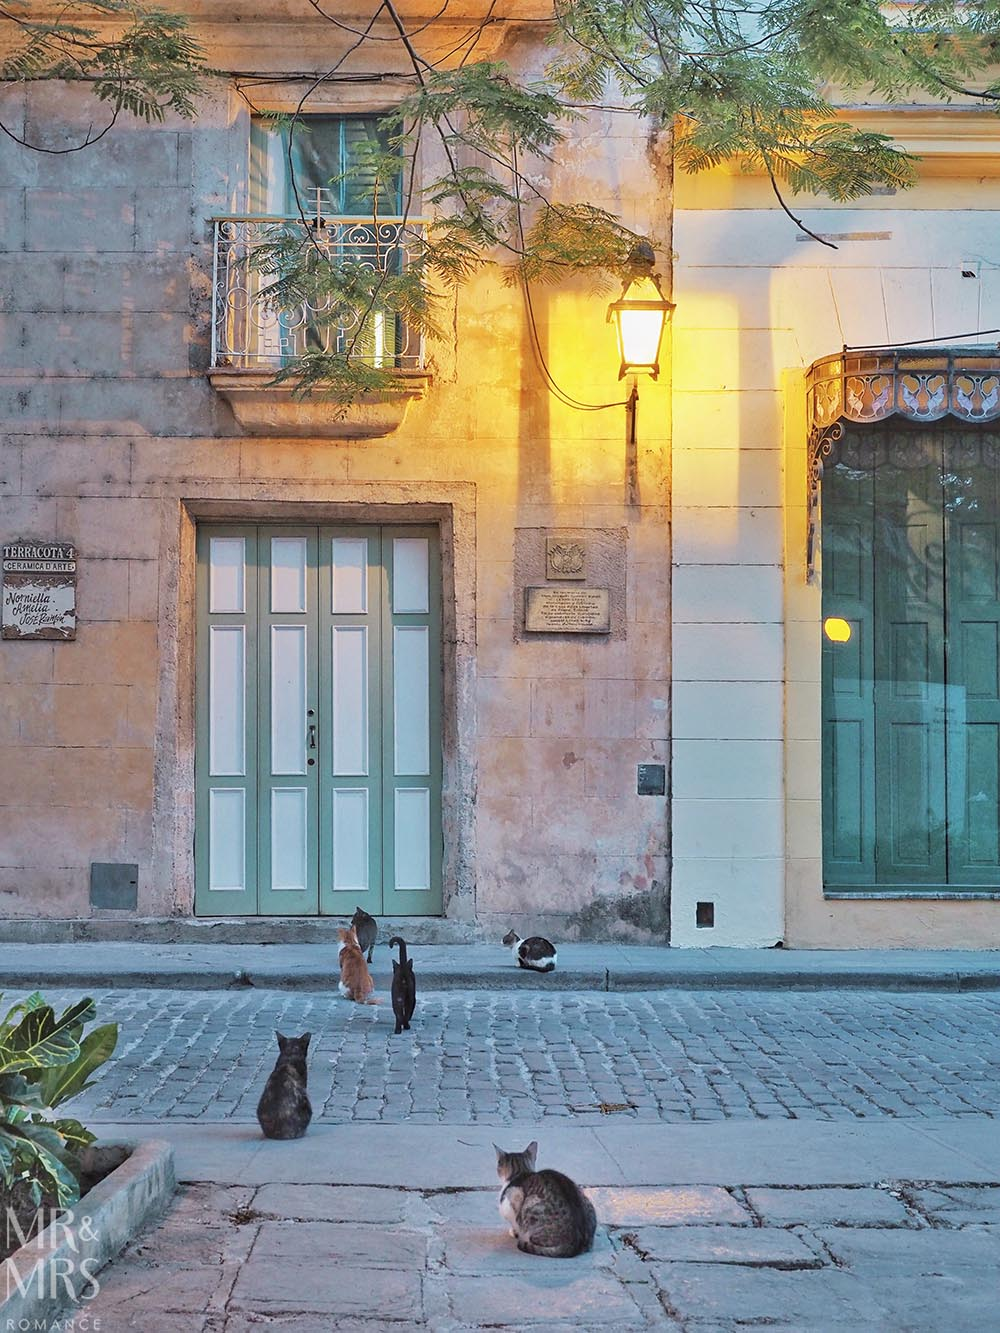 Cats in old Havana Cuba